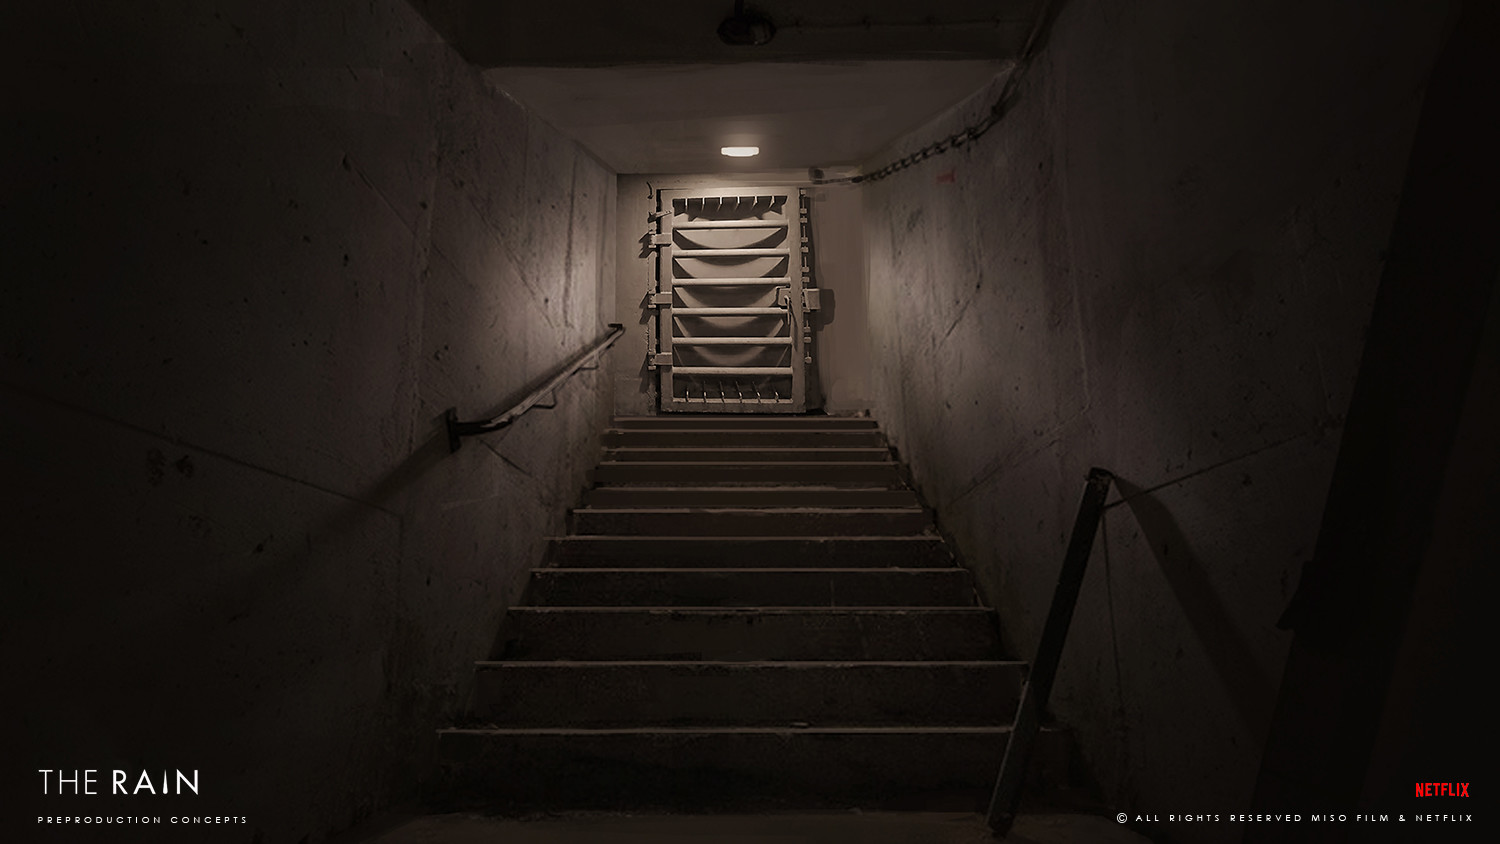 Jan ditlev bunker stairs to exit